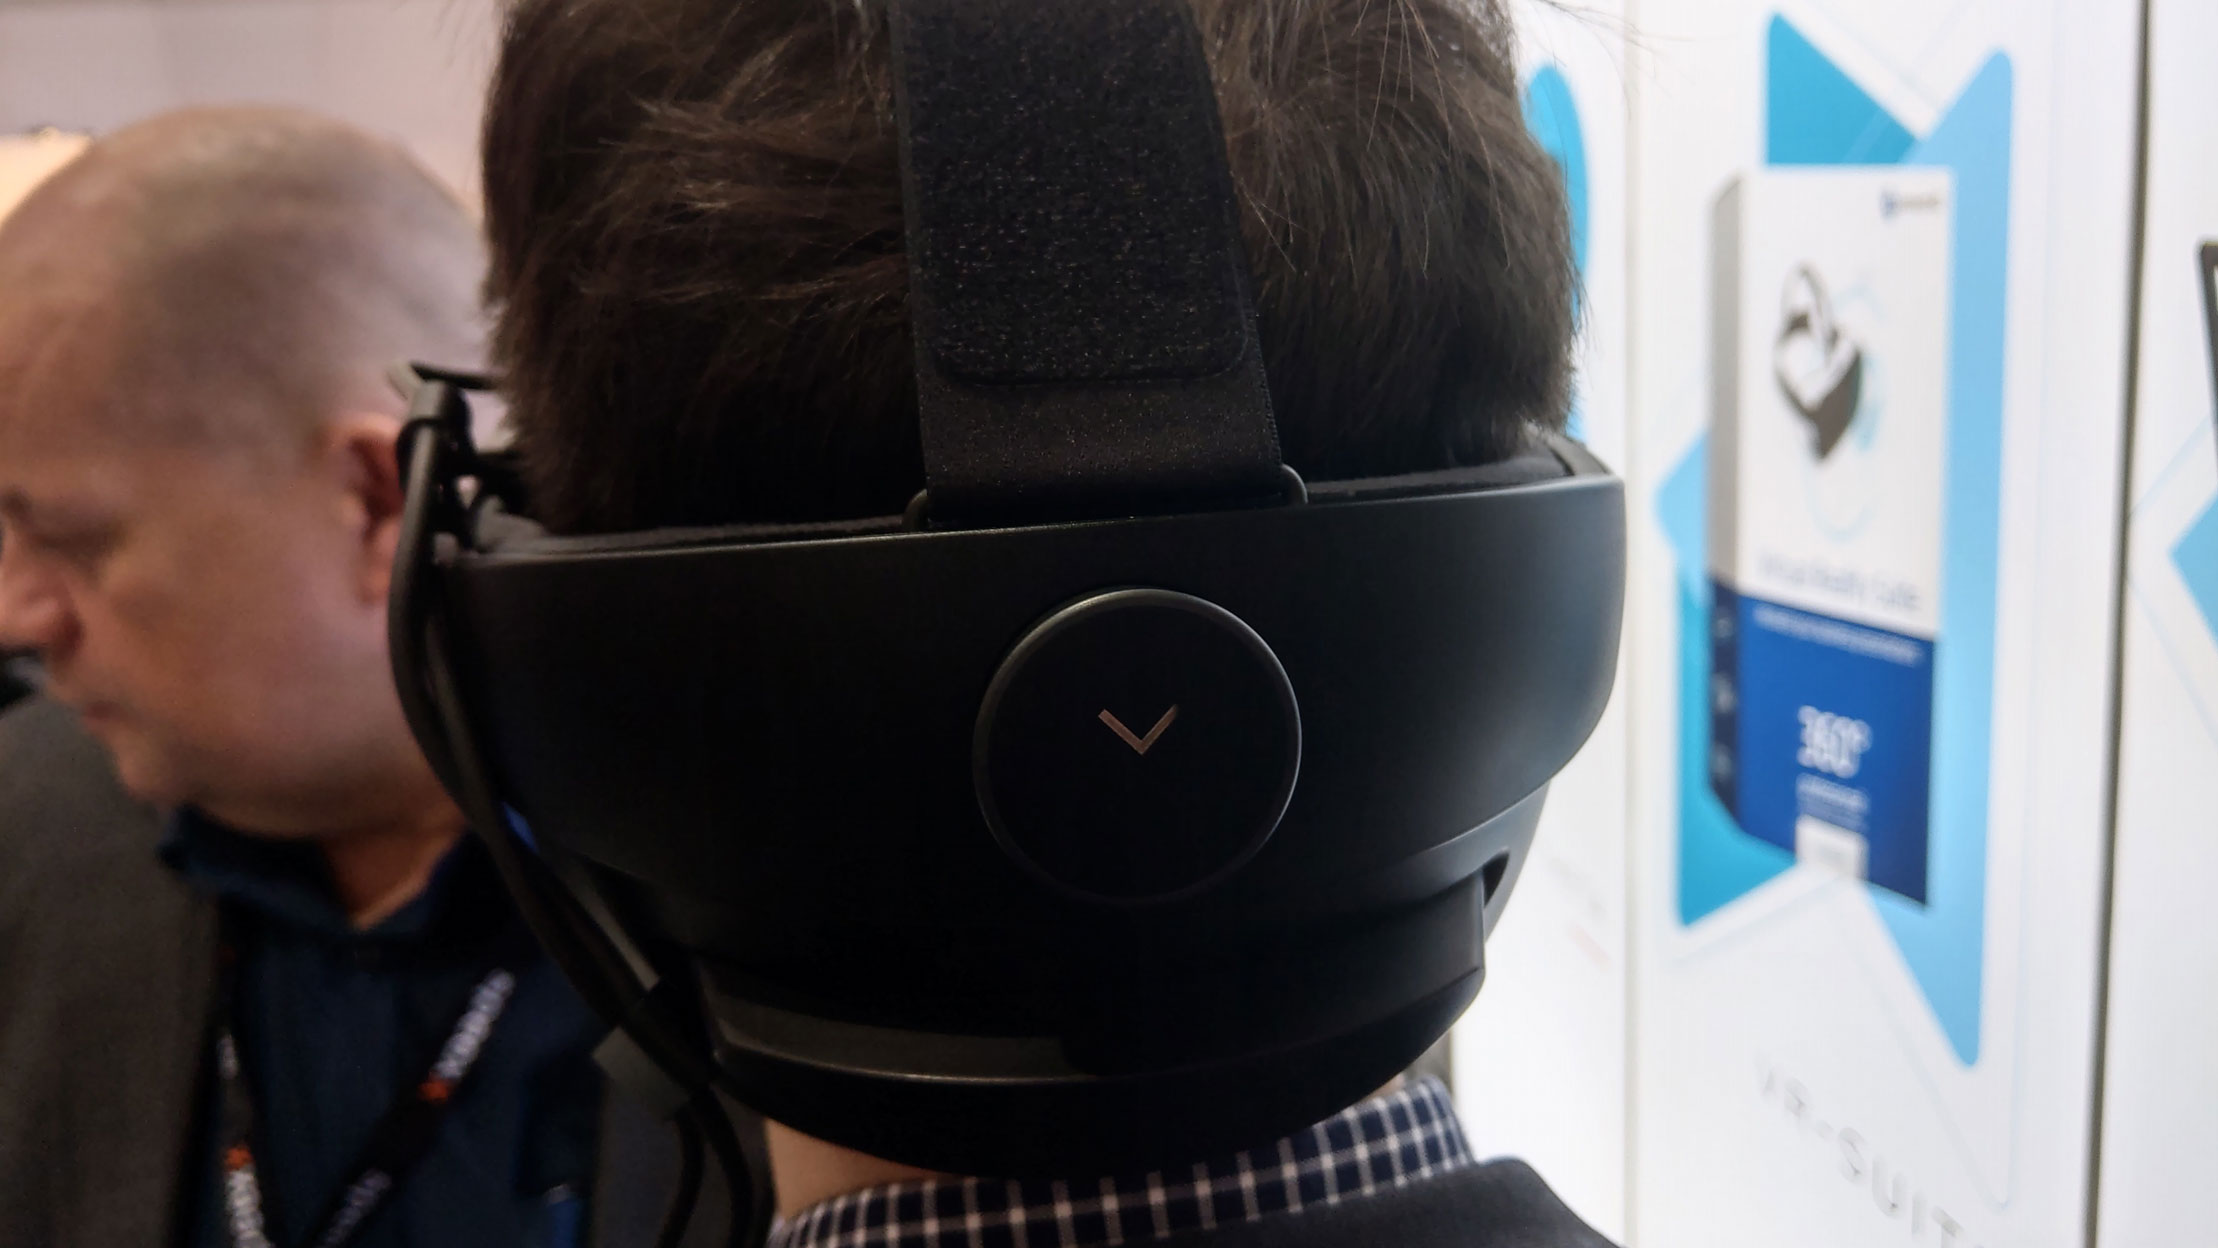 Varjo VR 2 hands on first impressions: perfect resolution